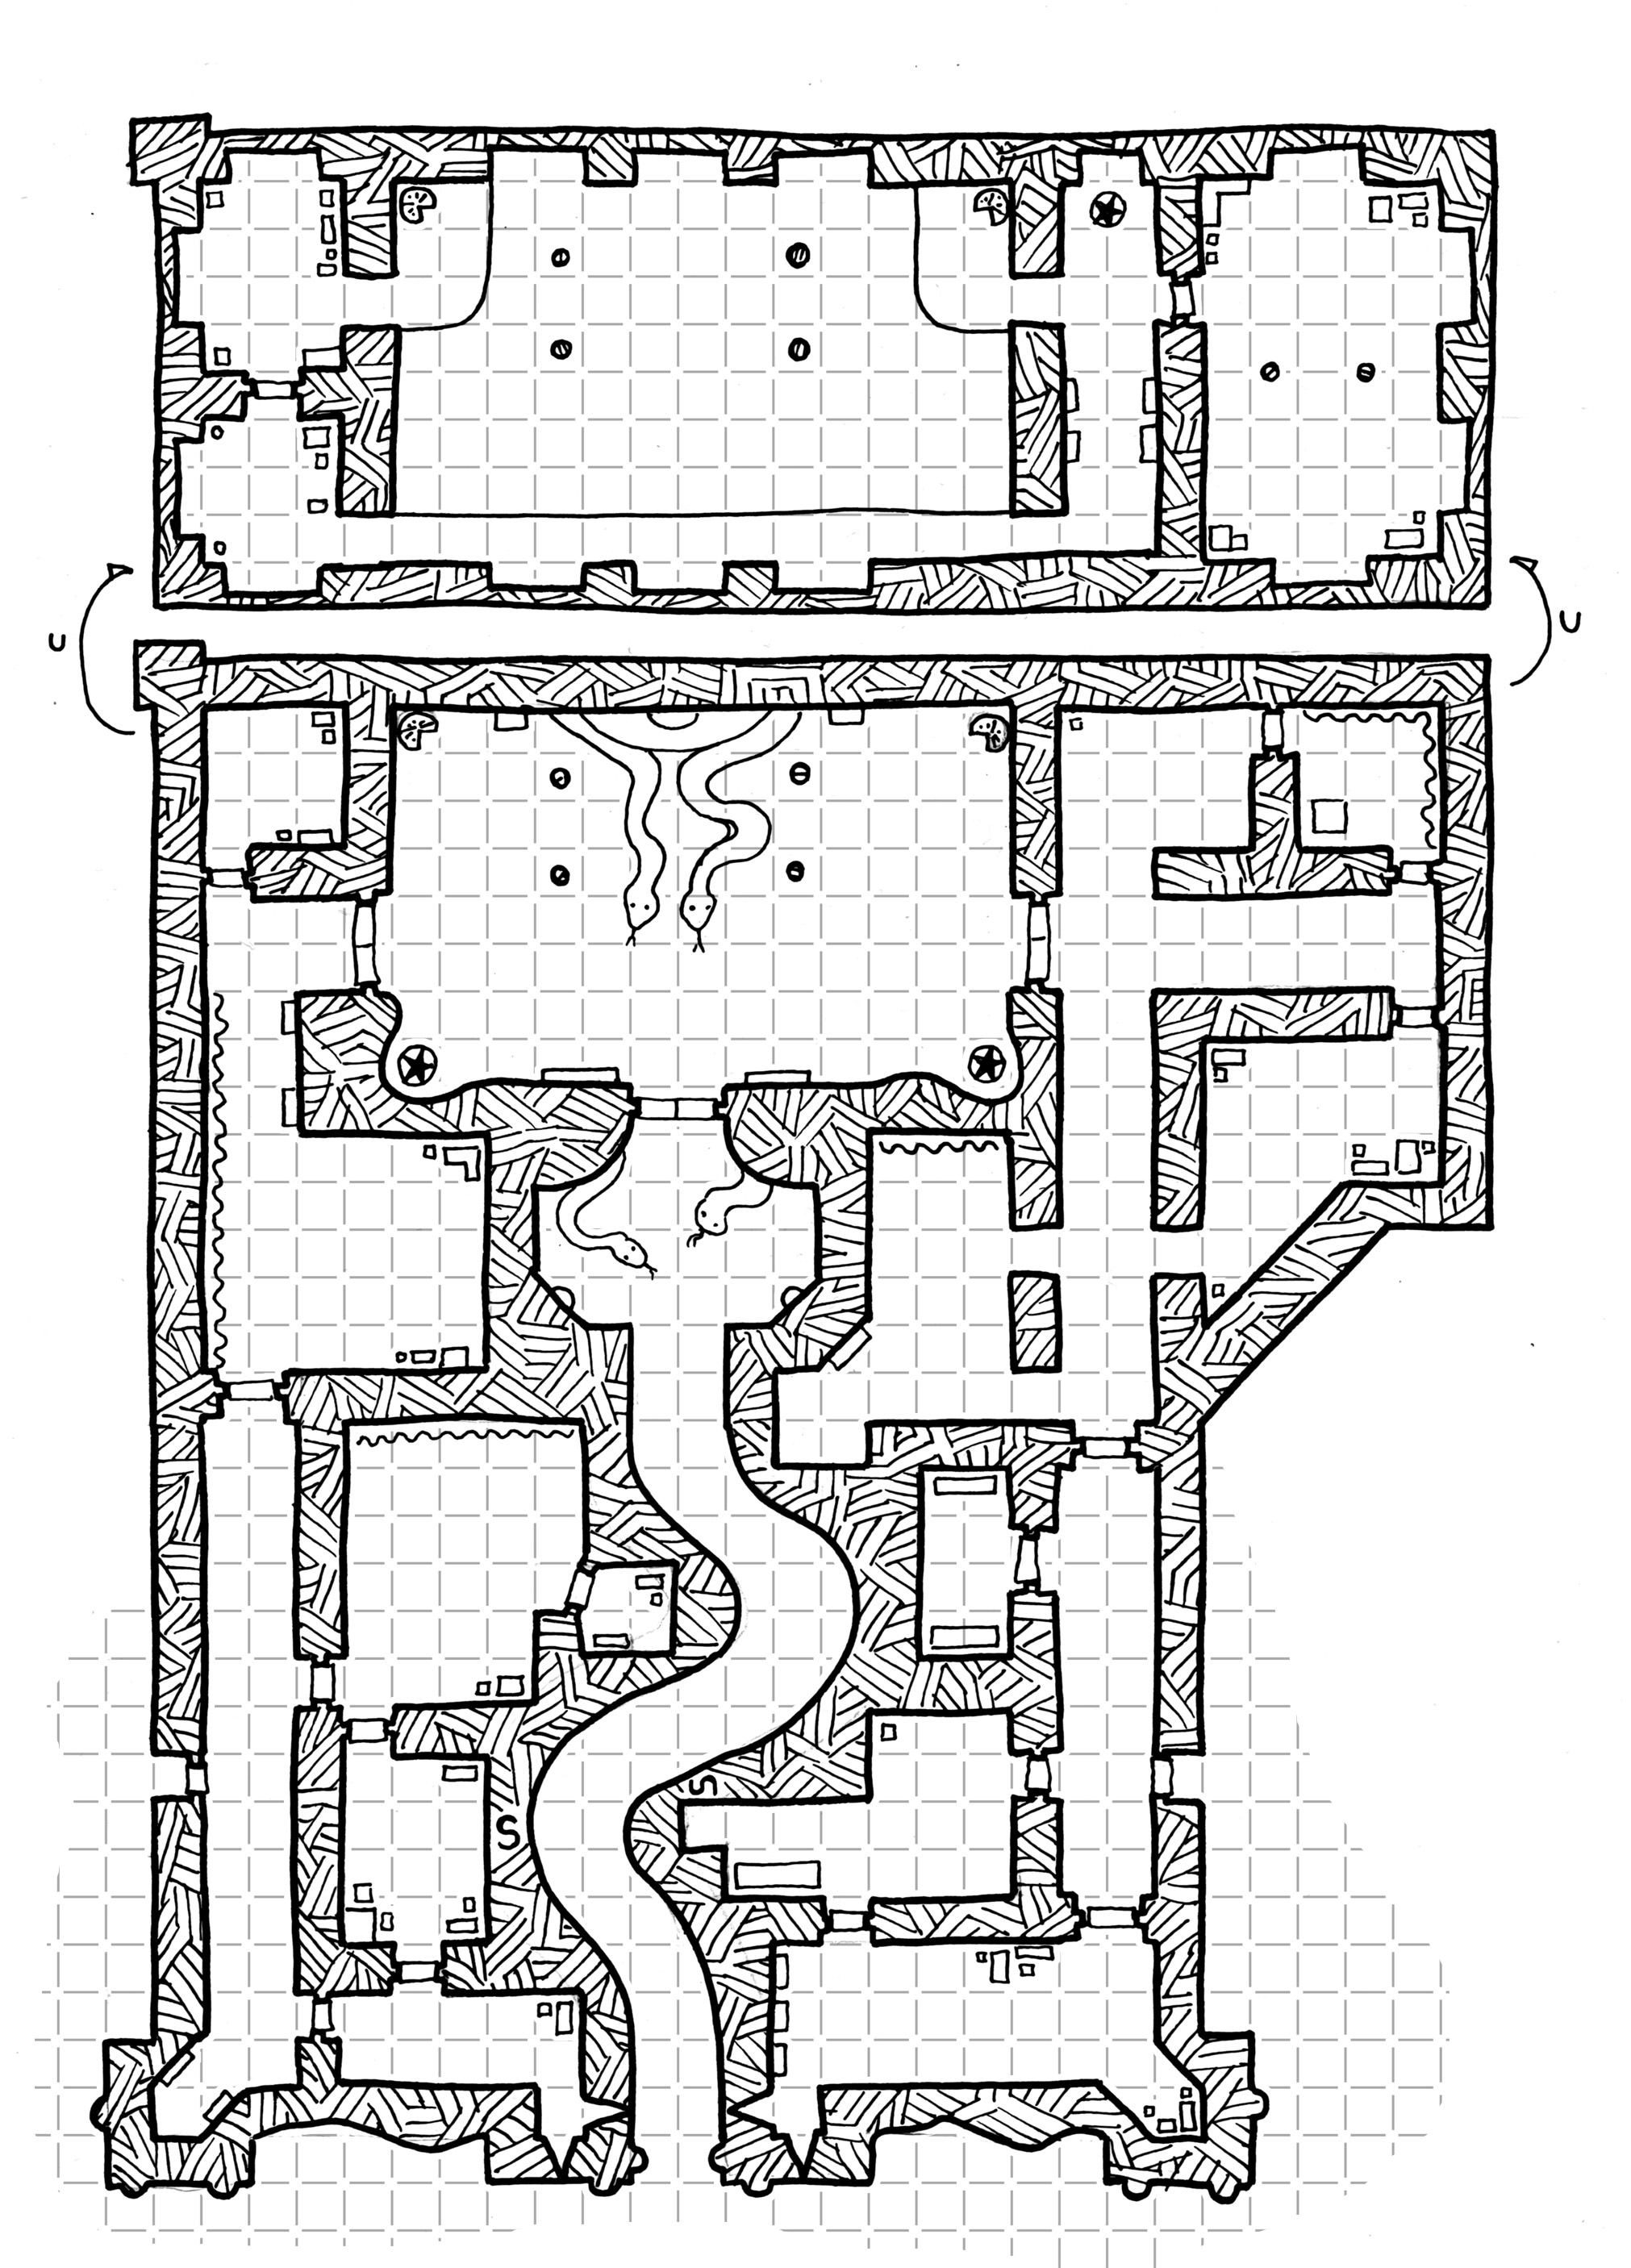 Friday Map Temple of the Snake Dysons Dodecahedron